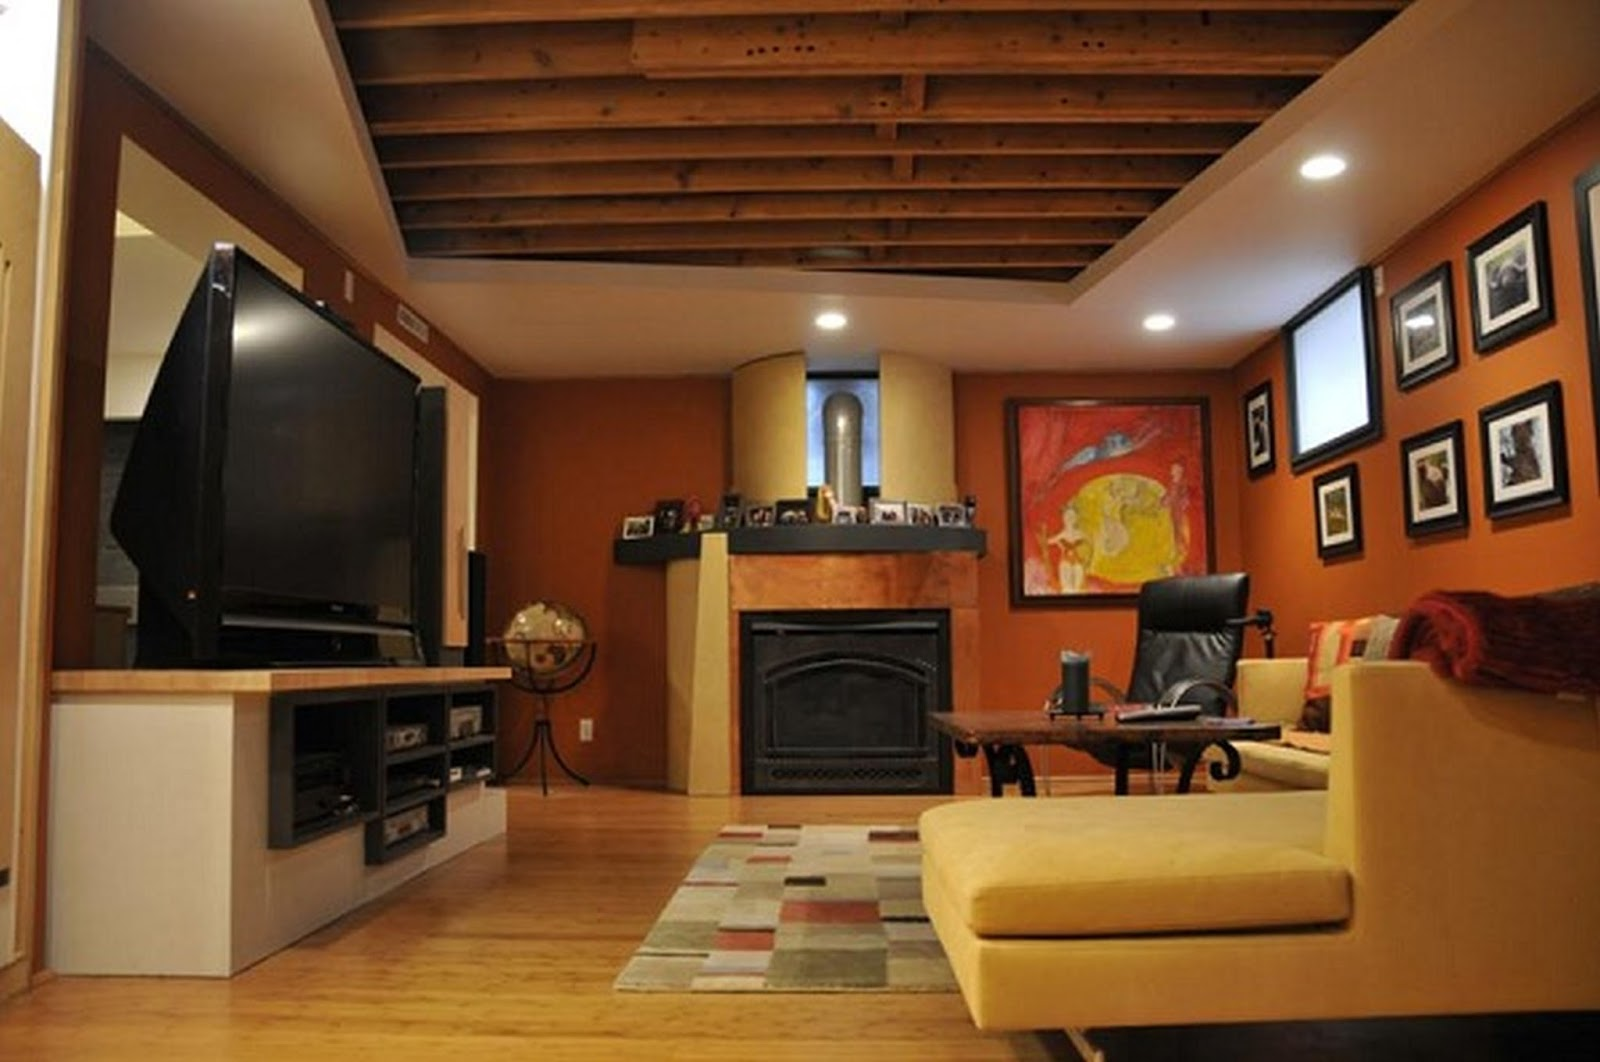 Man Cave Ceiling Ideas : My basement ideas the coolest on a budget